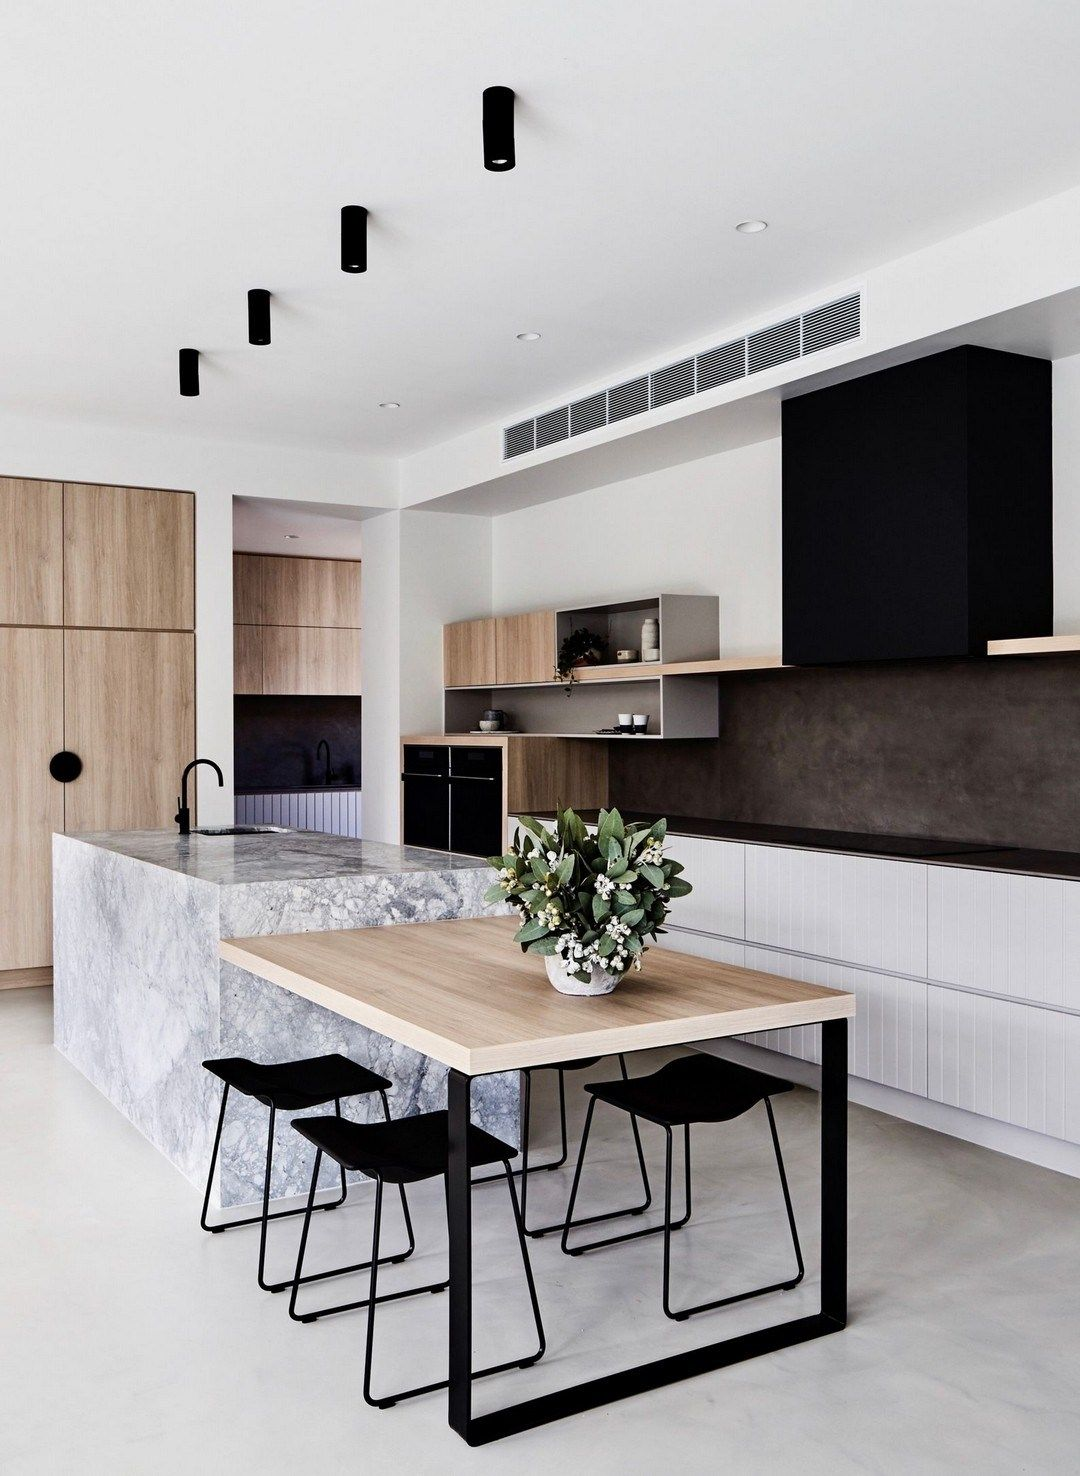 Les Plus Belle Cuisine 45 Awesome Modern Scandinavian Kitchen Ideas 开放式厨房 Home